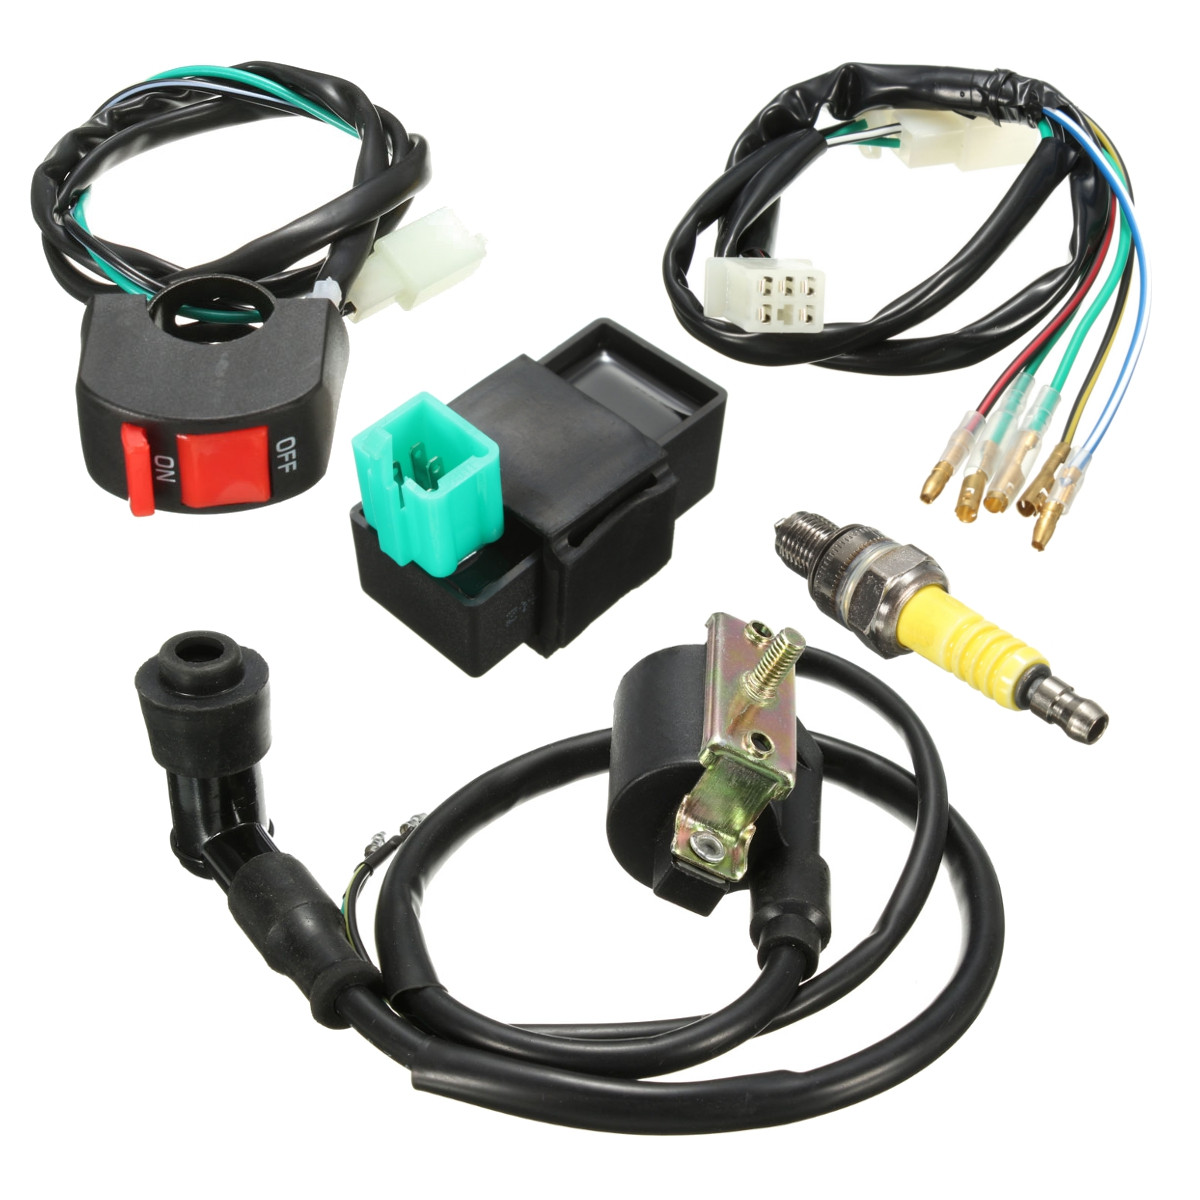 hight resolution of wiring loom light kill on off switch ignition coil cdi box spark plug kit for 110cc 120cc 125cc motorcycle atv dirtbike pit dirt bike walmart com